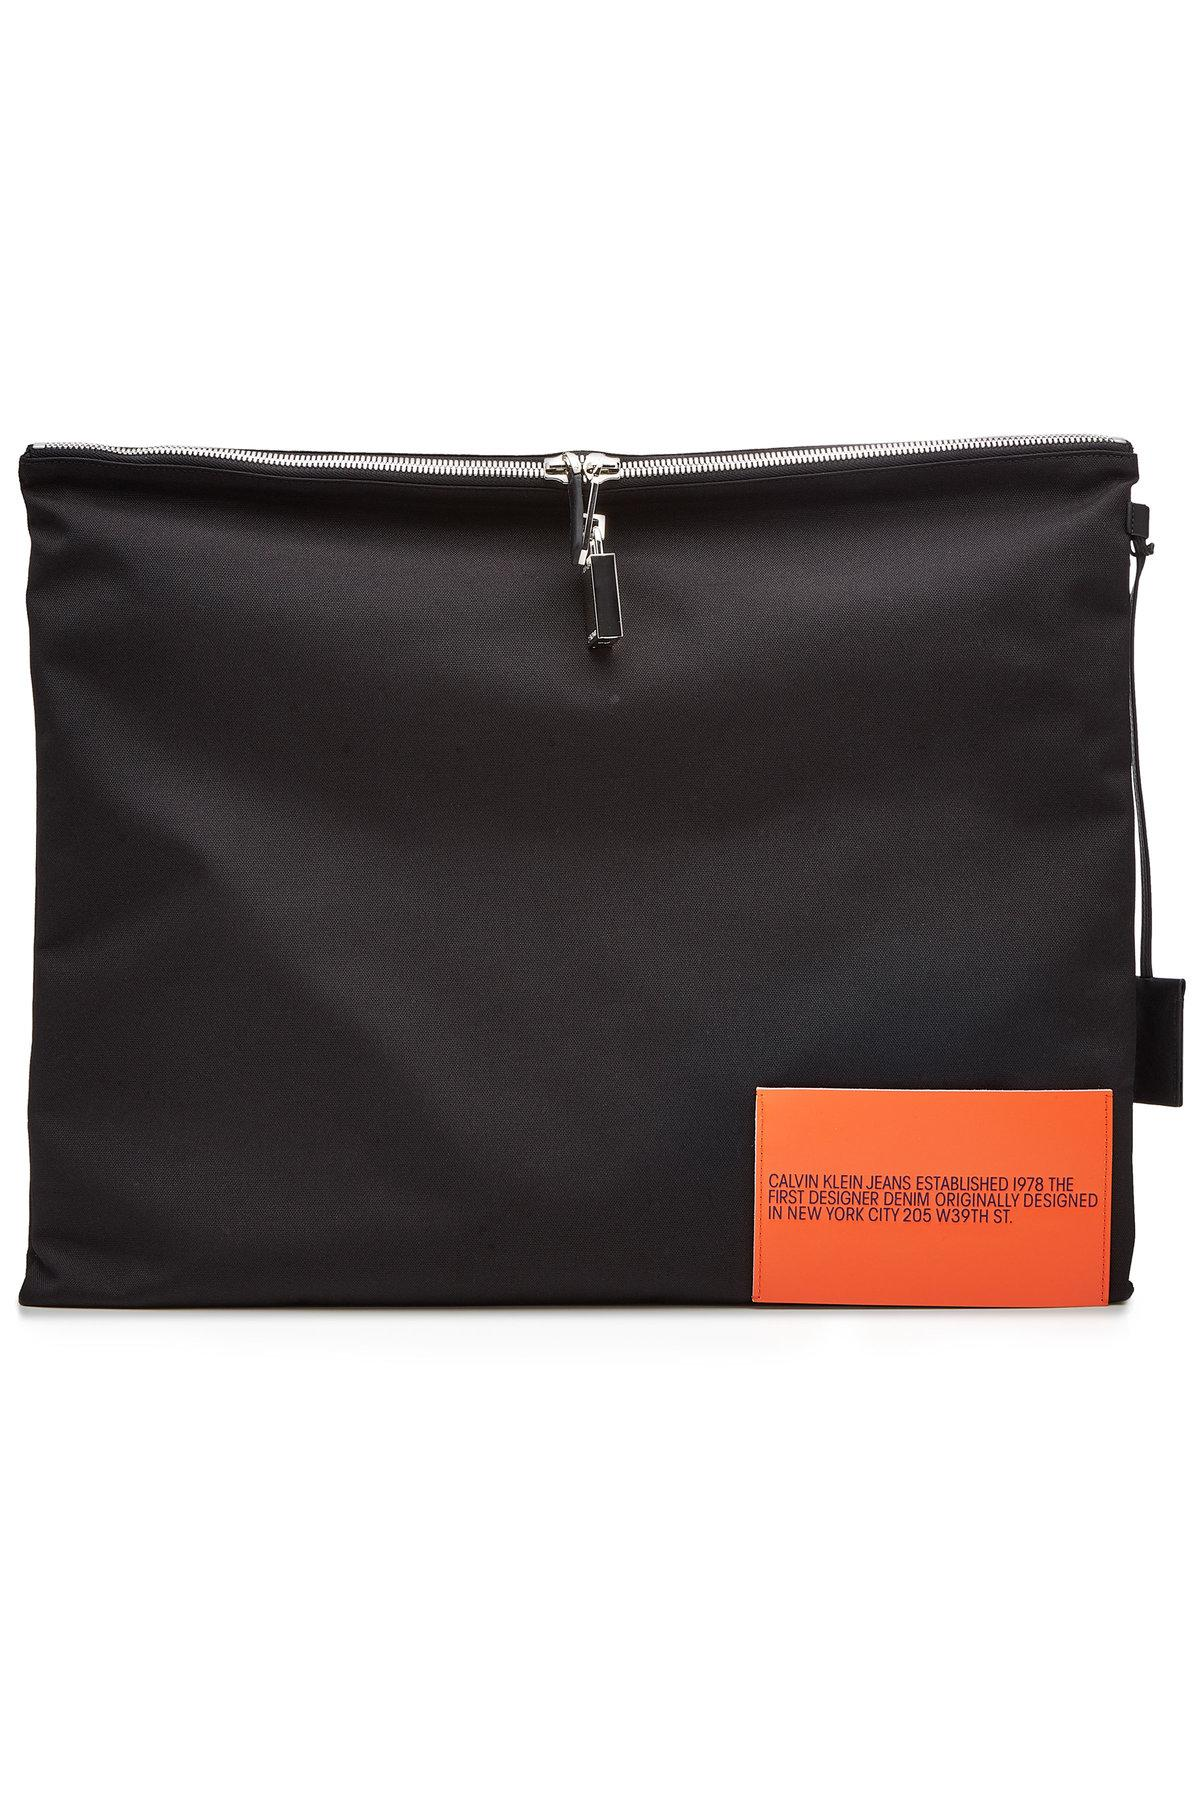 Calvin Klein 205W39Nyc Fabric Pouch In Black